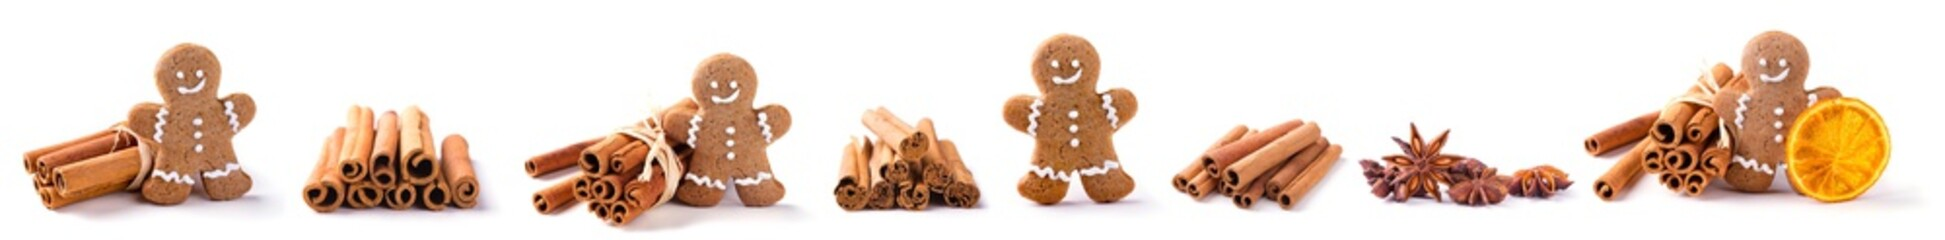 Christmas border with isolated food objects  -  Homemade gingerbread man, cinnamon sticks, orange slice, star anise  -  Objects isolated on white background